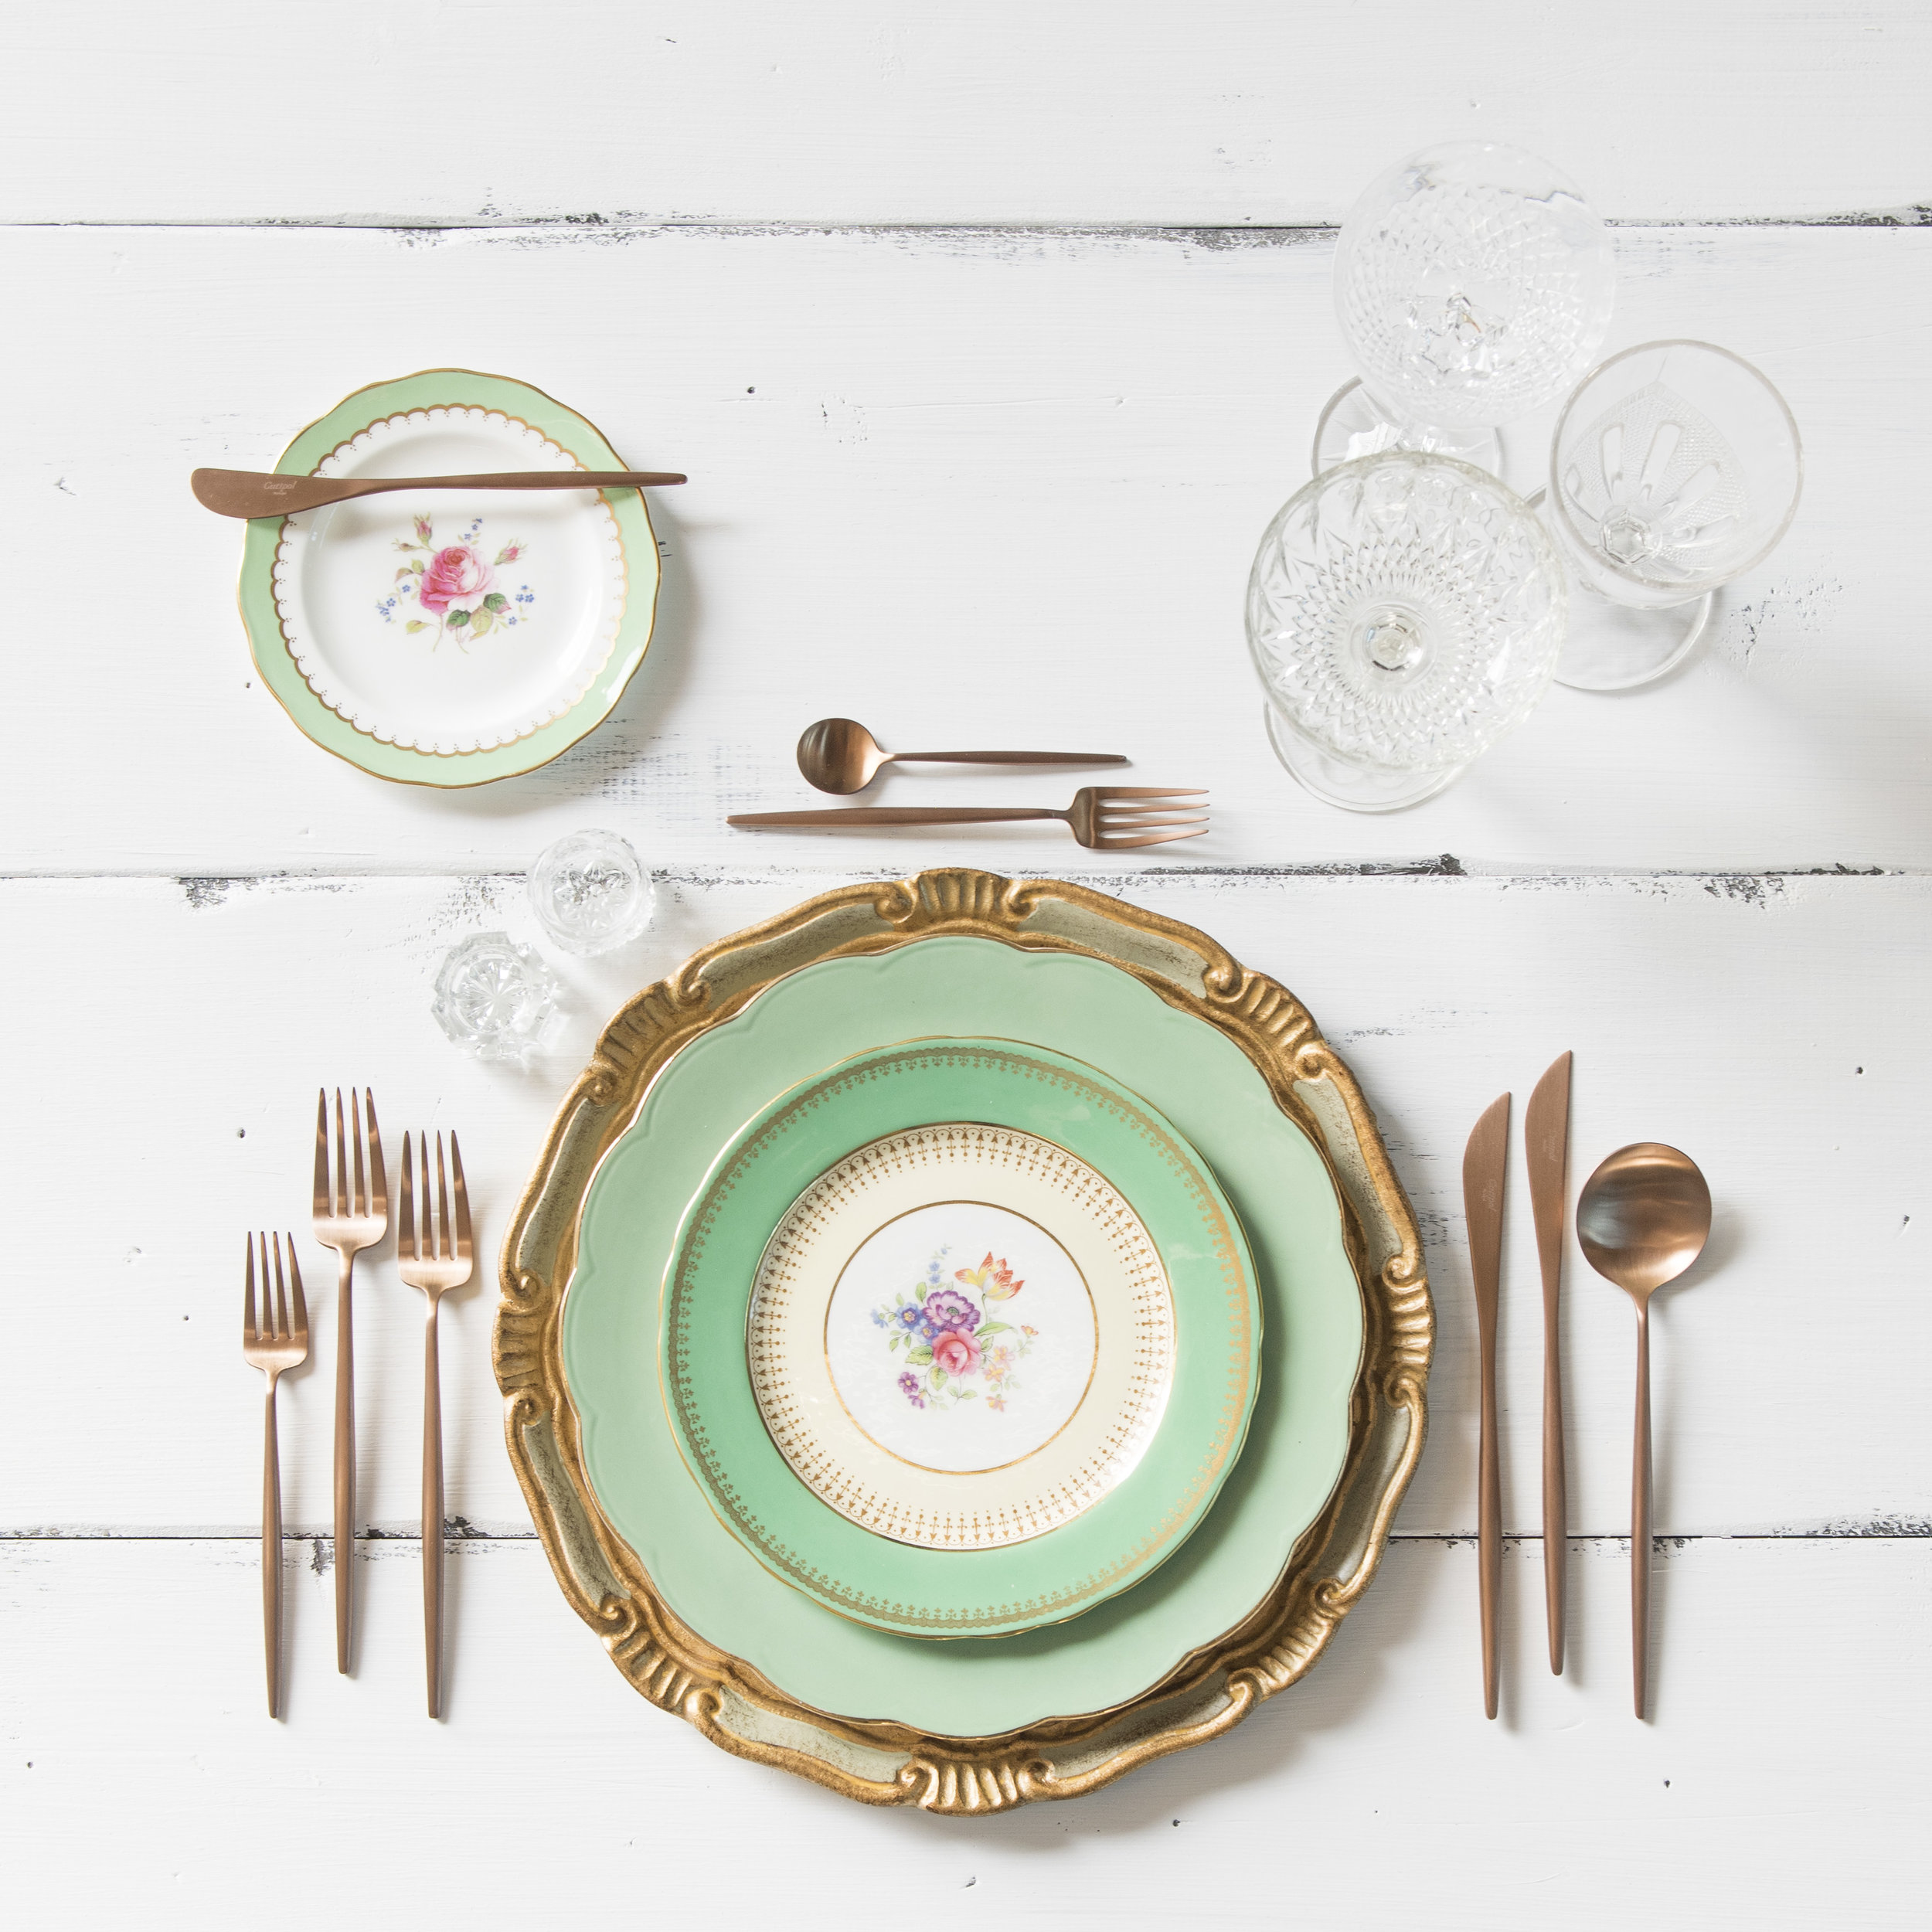 RENT: Florentine Chargers in Sage/Gold + Green Botanicals Vintage China + Moon Flatware in Brushed Rose Gold + Vintage Cut Crystal Goblets + Early American Pressed Glass Goblets + Vintage Champagne Coupes + Antique Crystal Salt Cellars   SHOP: Florentine Chargers in Sage/Gold + Moon Flatware in Brushed Rose Gold